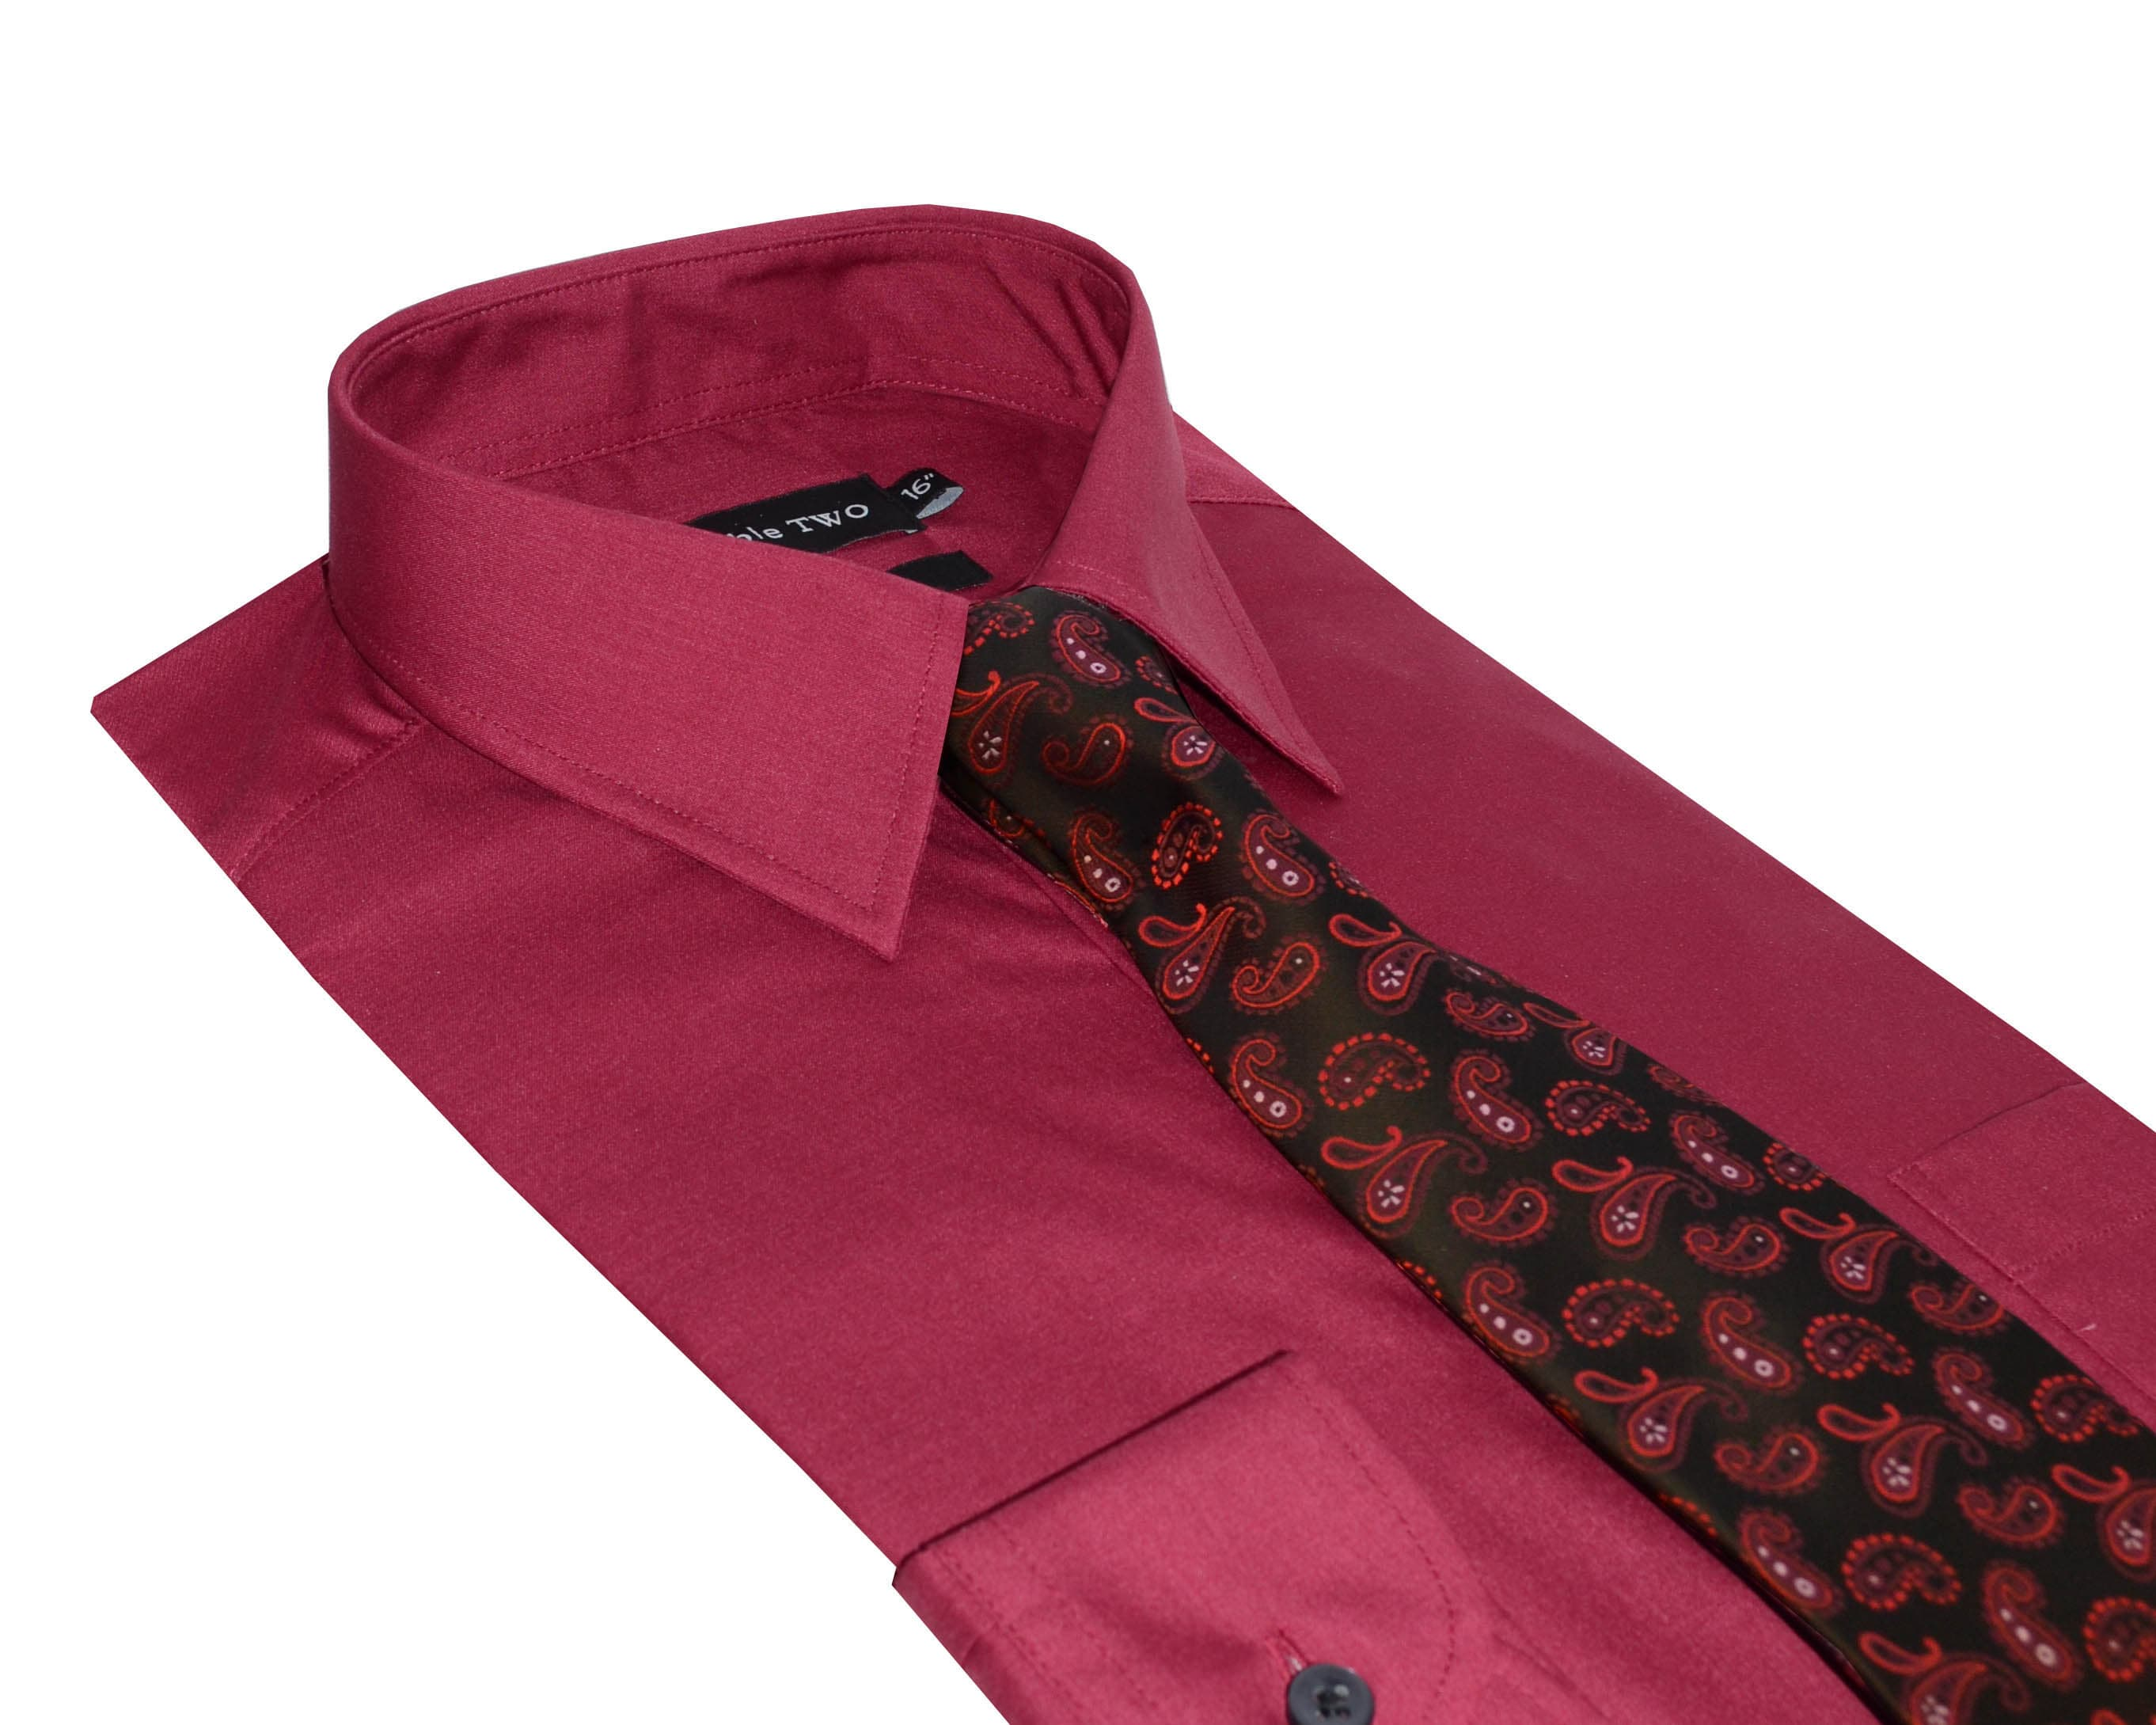 Double TWO | Plain Burgundy Formal Shirt and Tie Set - photo#49